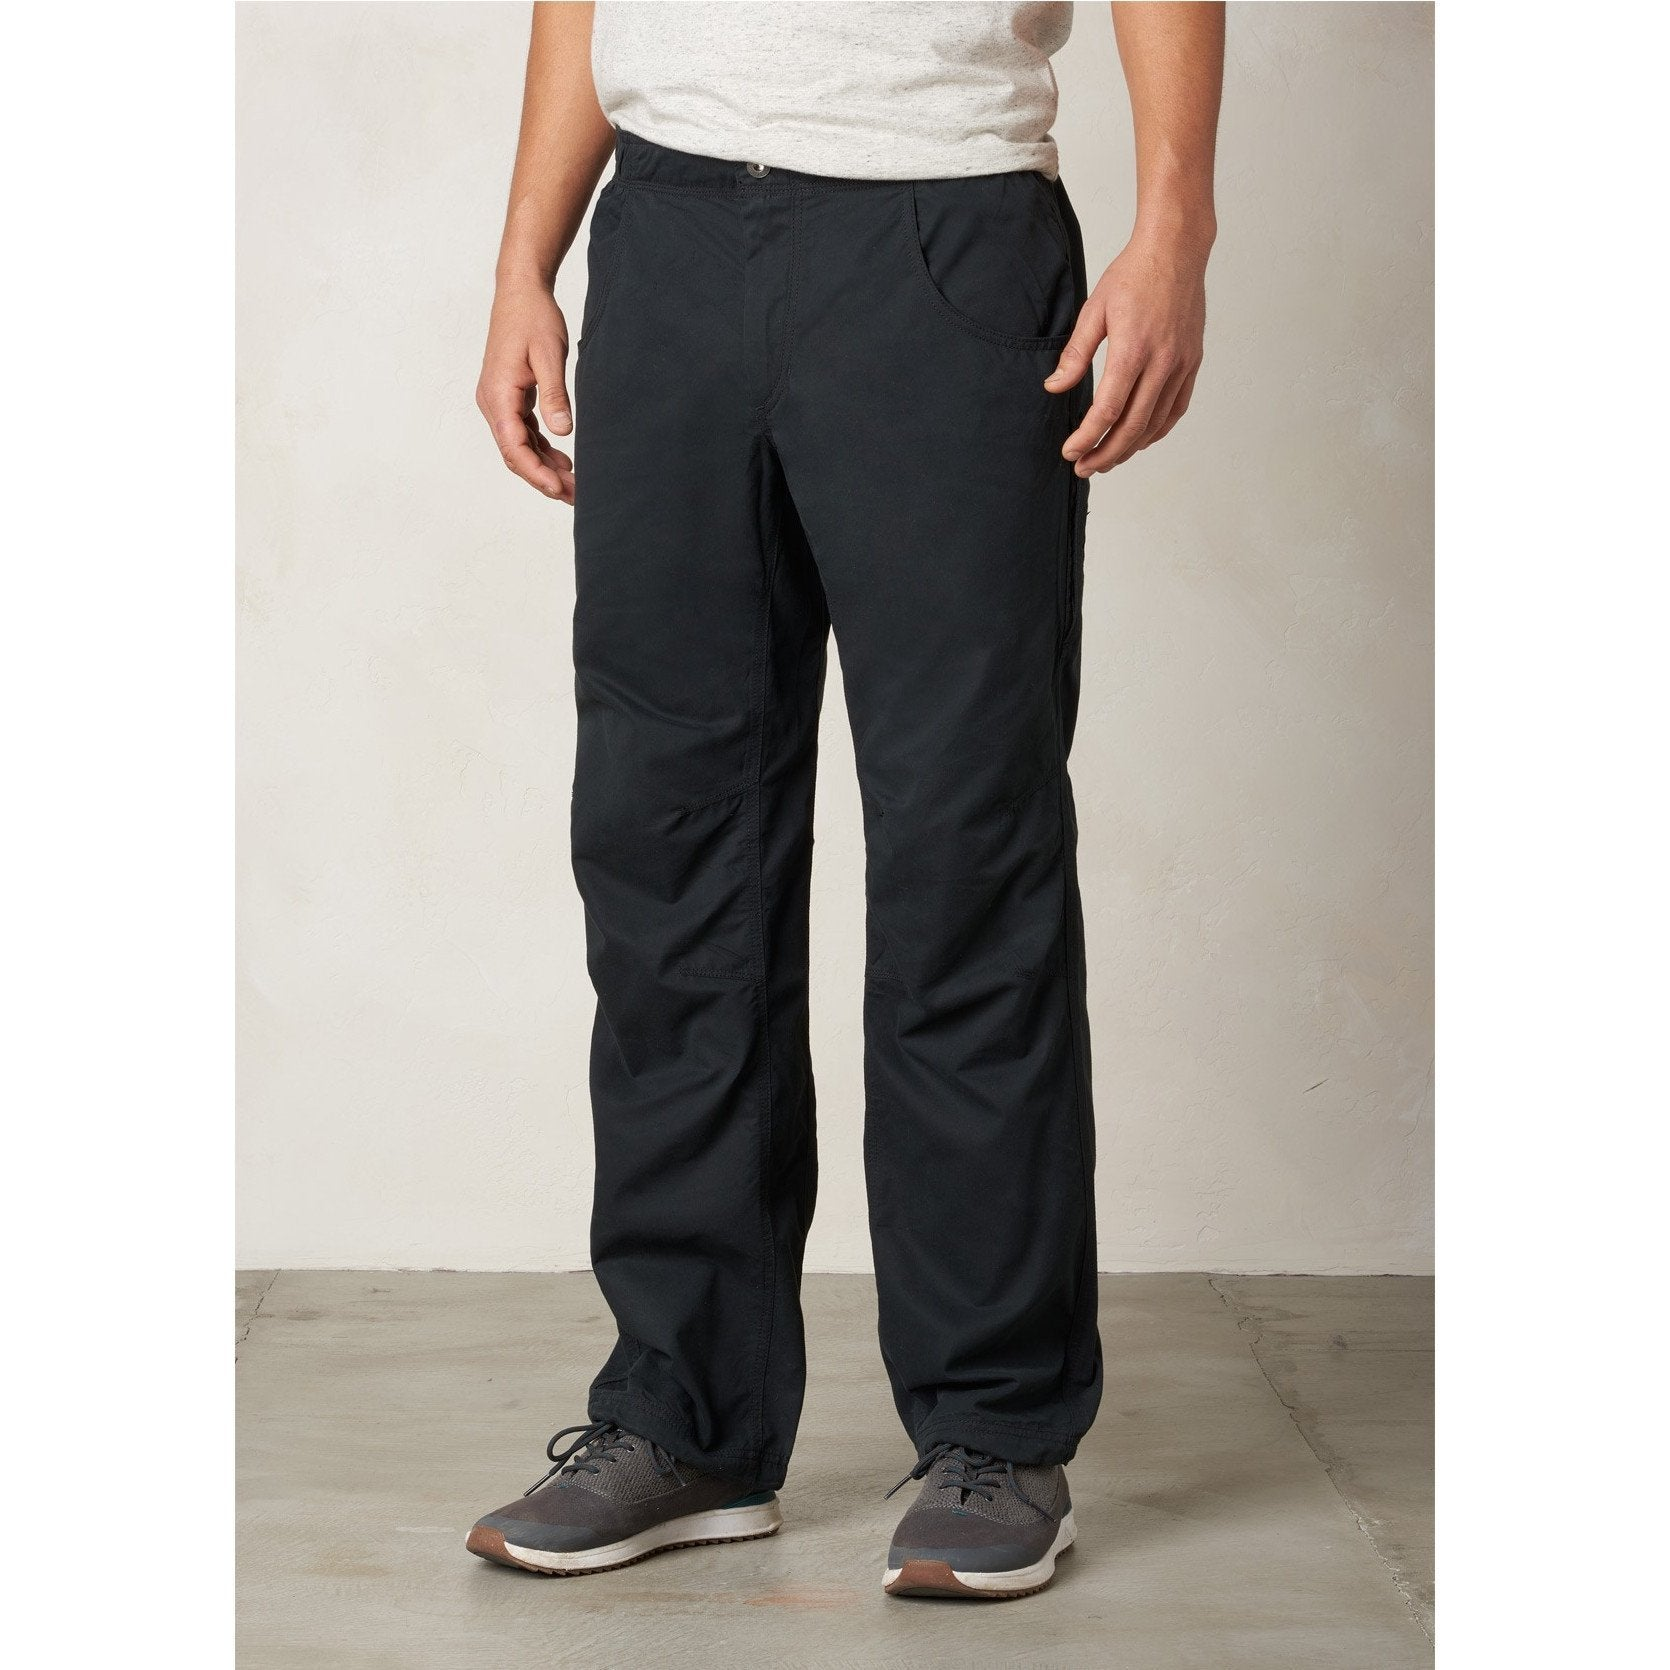 Prana Ecliptic climbing Pant, in black